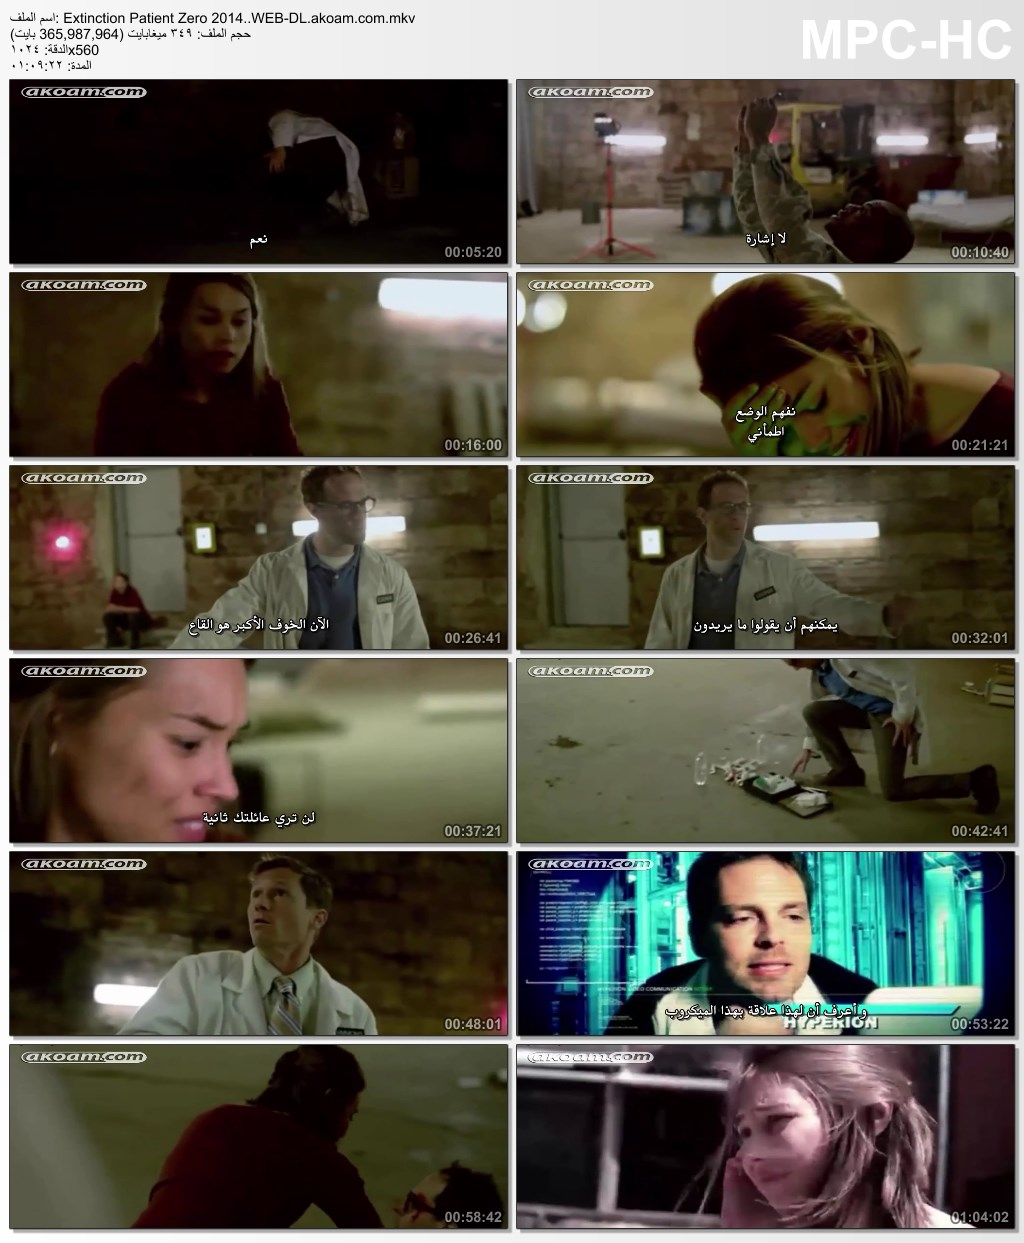 Extinction: Patient Zero 2014,Extinction: Patient Zero,الاثارة